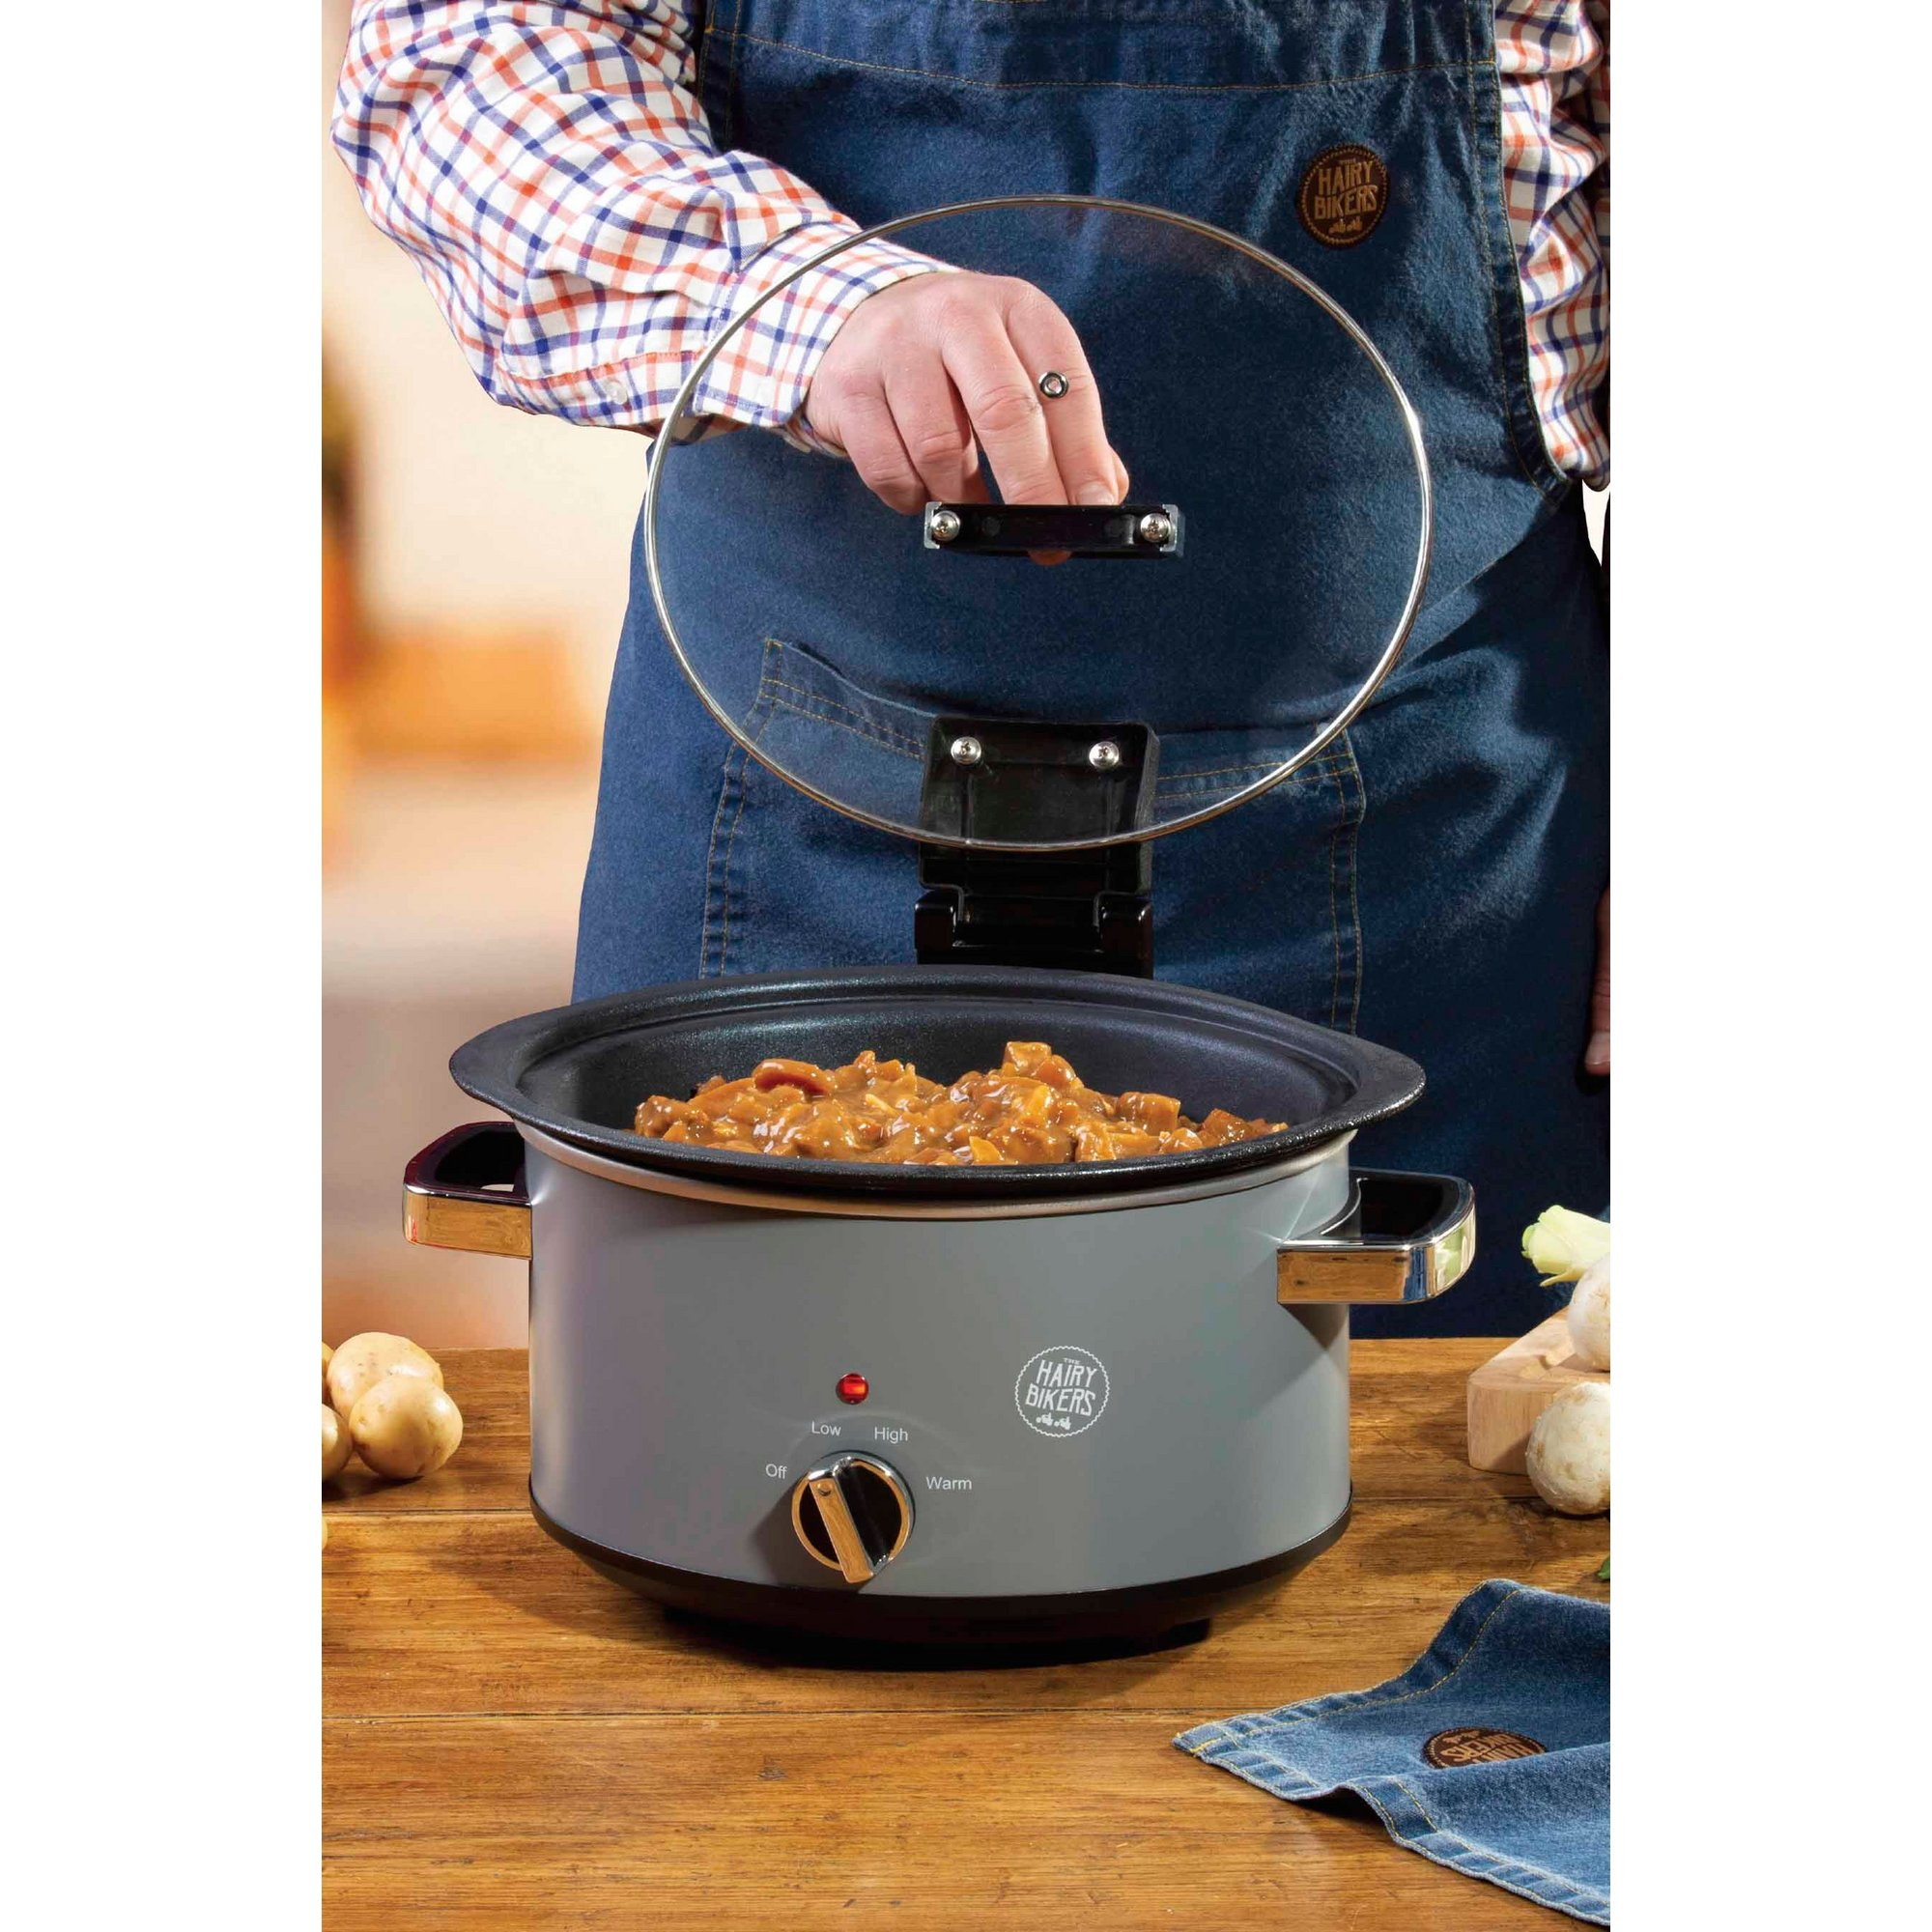 Image of Hairy Bikers 3.5L Sear and Stew Hinged Lid Slow Cooker